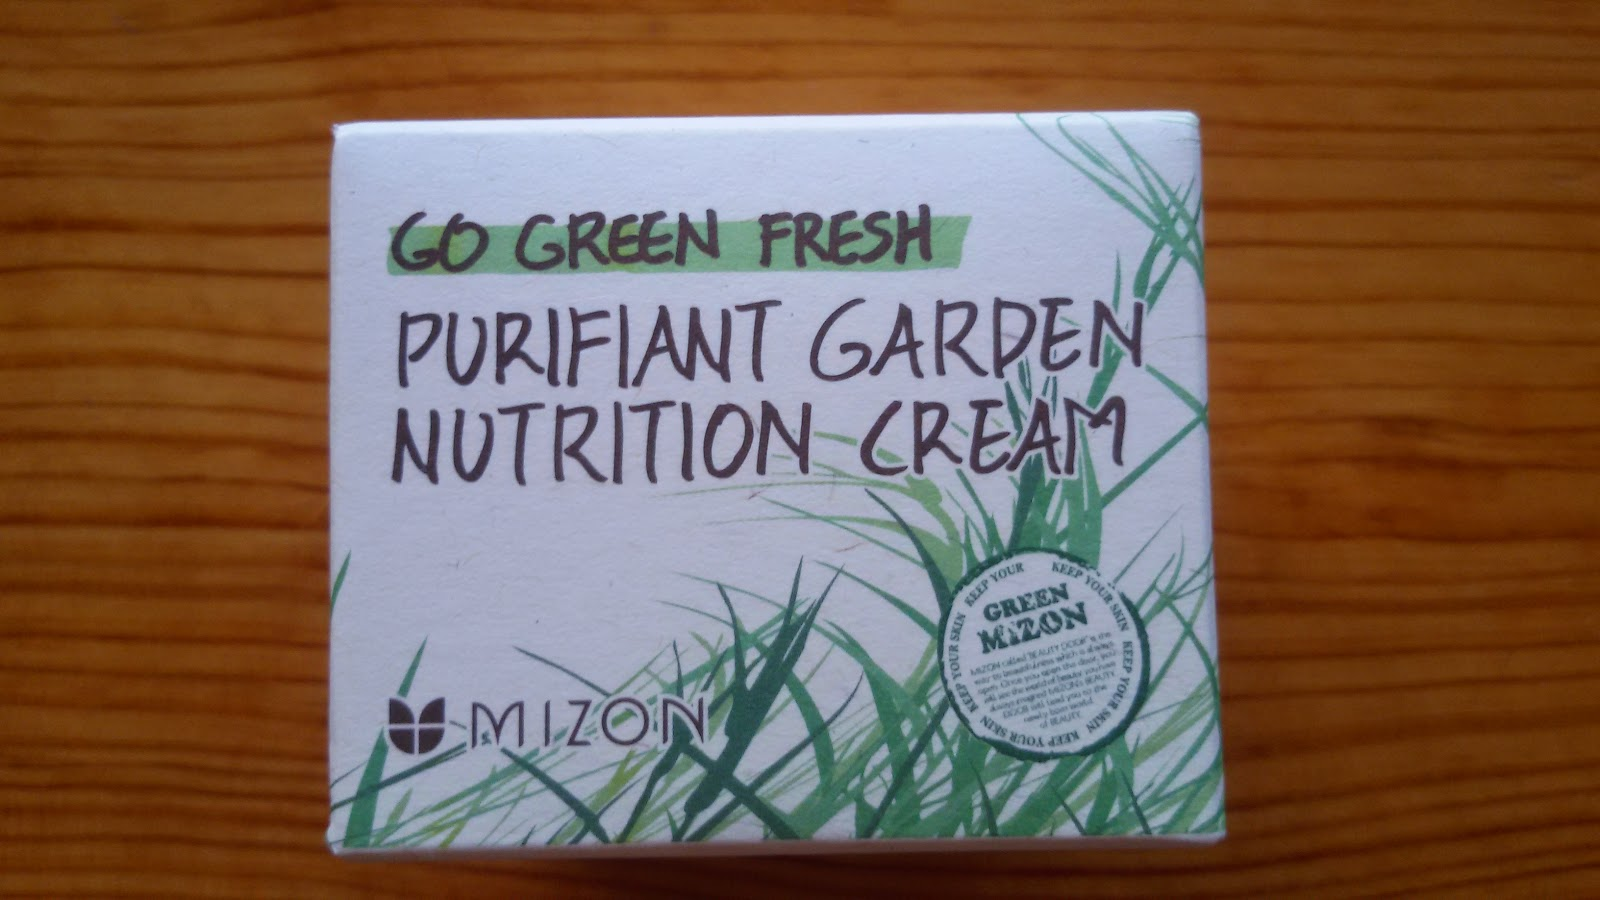 Purifiant Garden Nutrition Cream